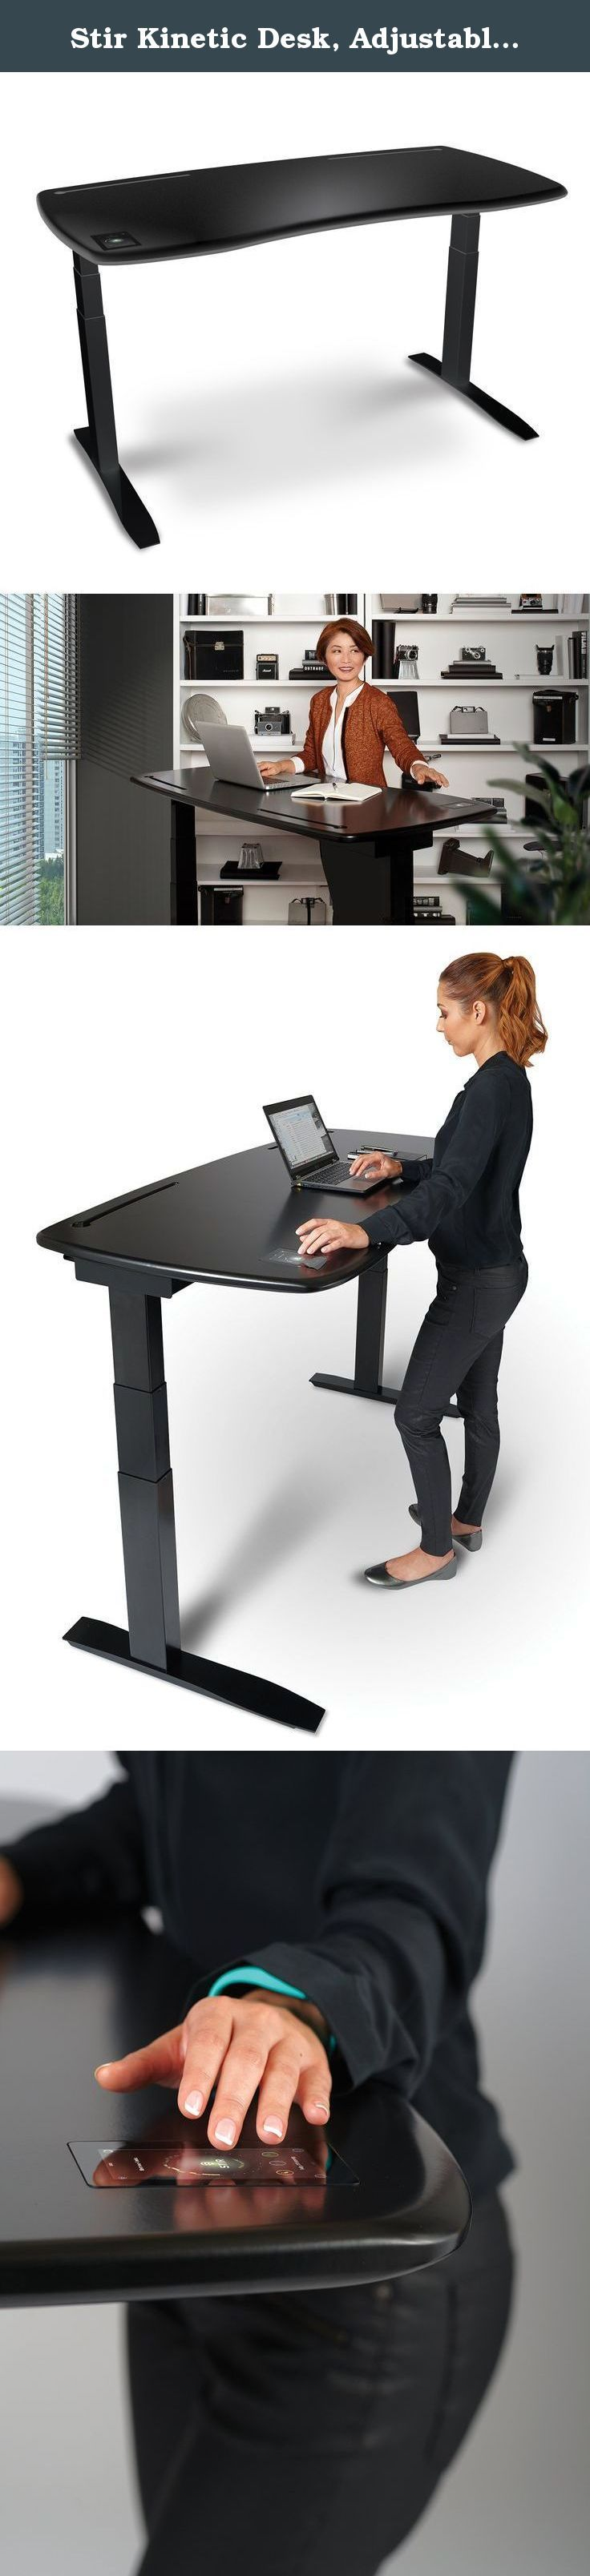 Stir Kinetic Desk, Adjustable Standing Desk with Wi-Fi, Bluetooth, built-in app and touchscreen, compatible with Fitbit - (Black). The Stir Kinetic Desk is the first ever smart, adjustable standing desk, designed to make sure users get the fullest benefit of standing more while working. The desk uses technology to make it effortless to use, more engaging, and to provide users with data to track how much they sit and stand and how many extra calories they burn. The desk has won numerous...